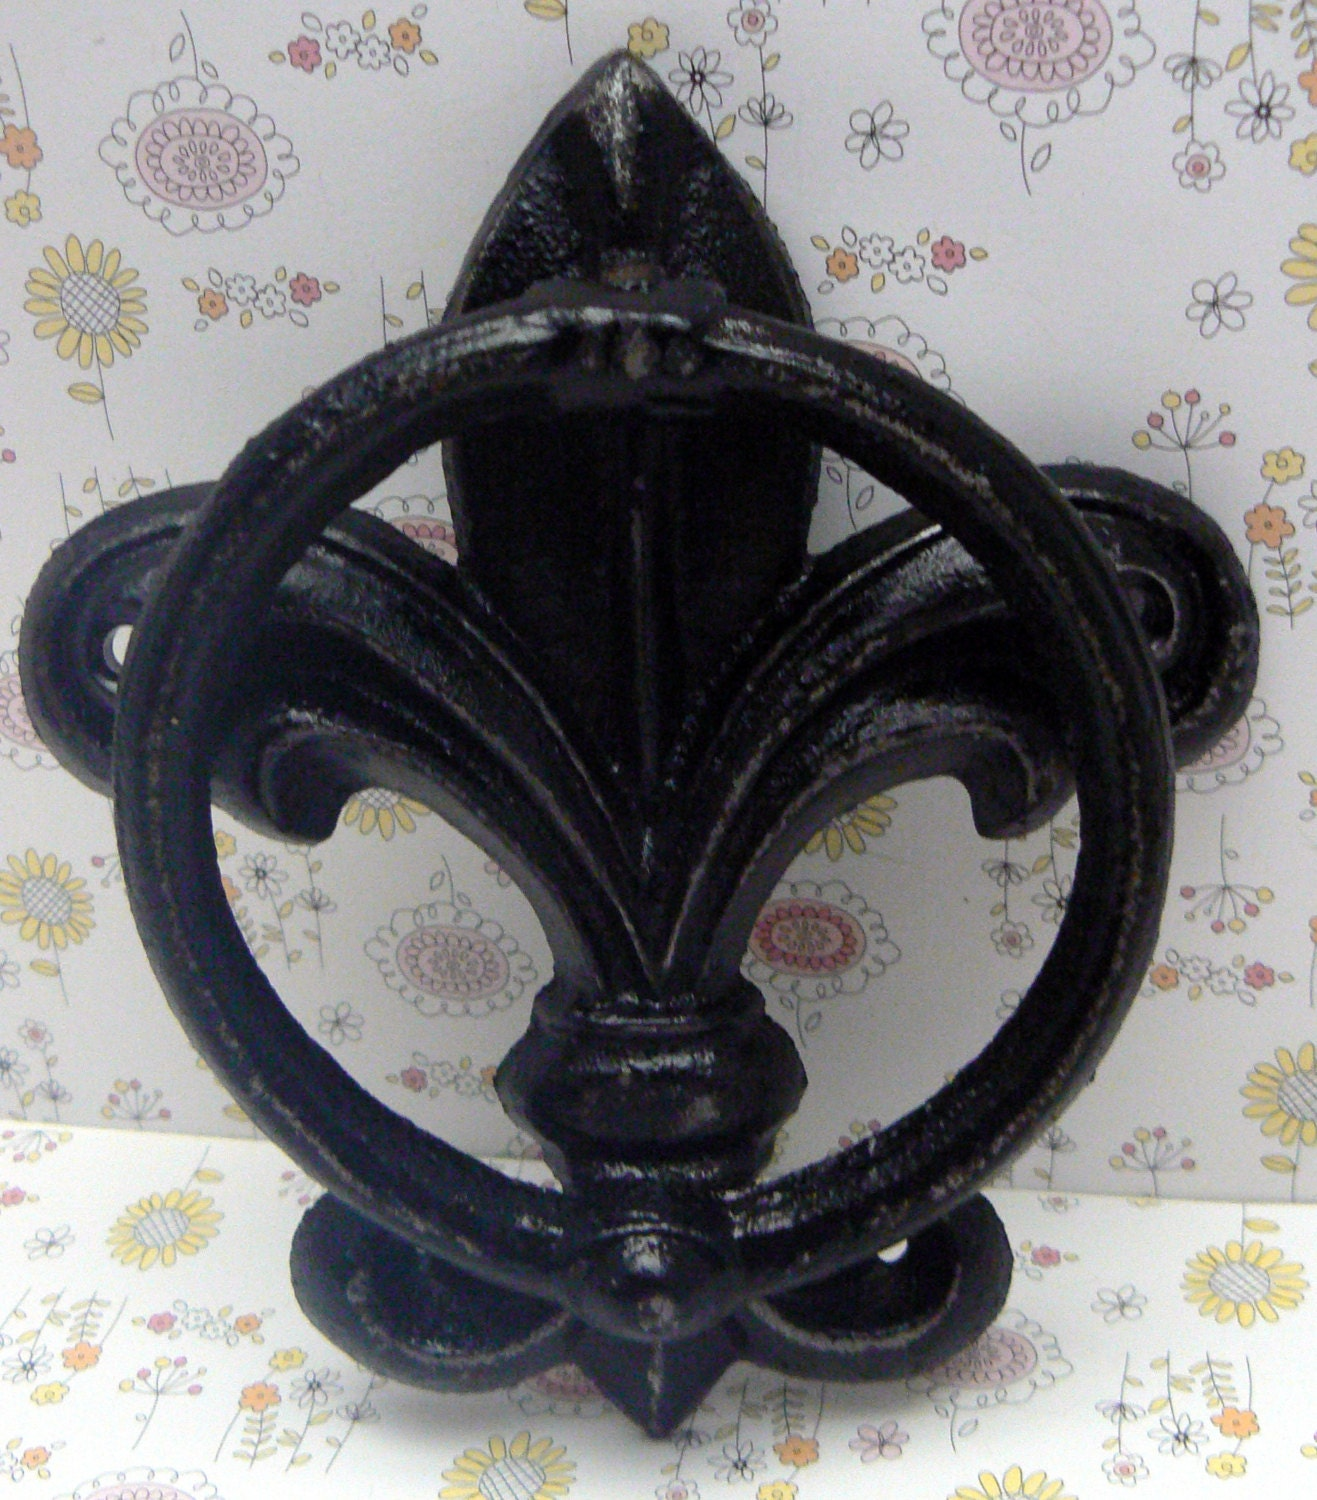 Fleur De Lis Cast Iron Shabby Chic Black FDL Welcome Door Knocker Home Decor